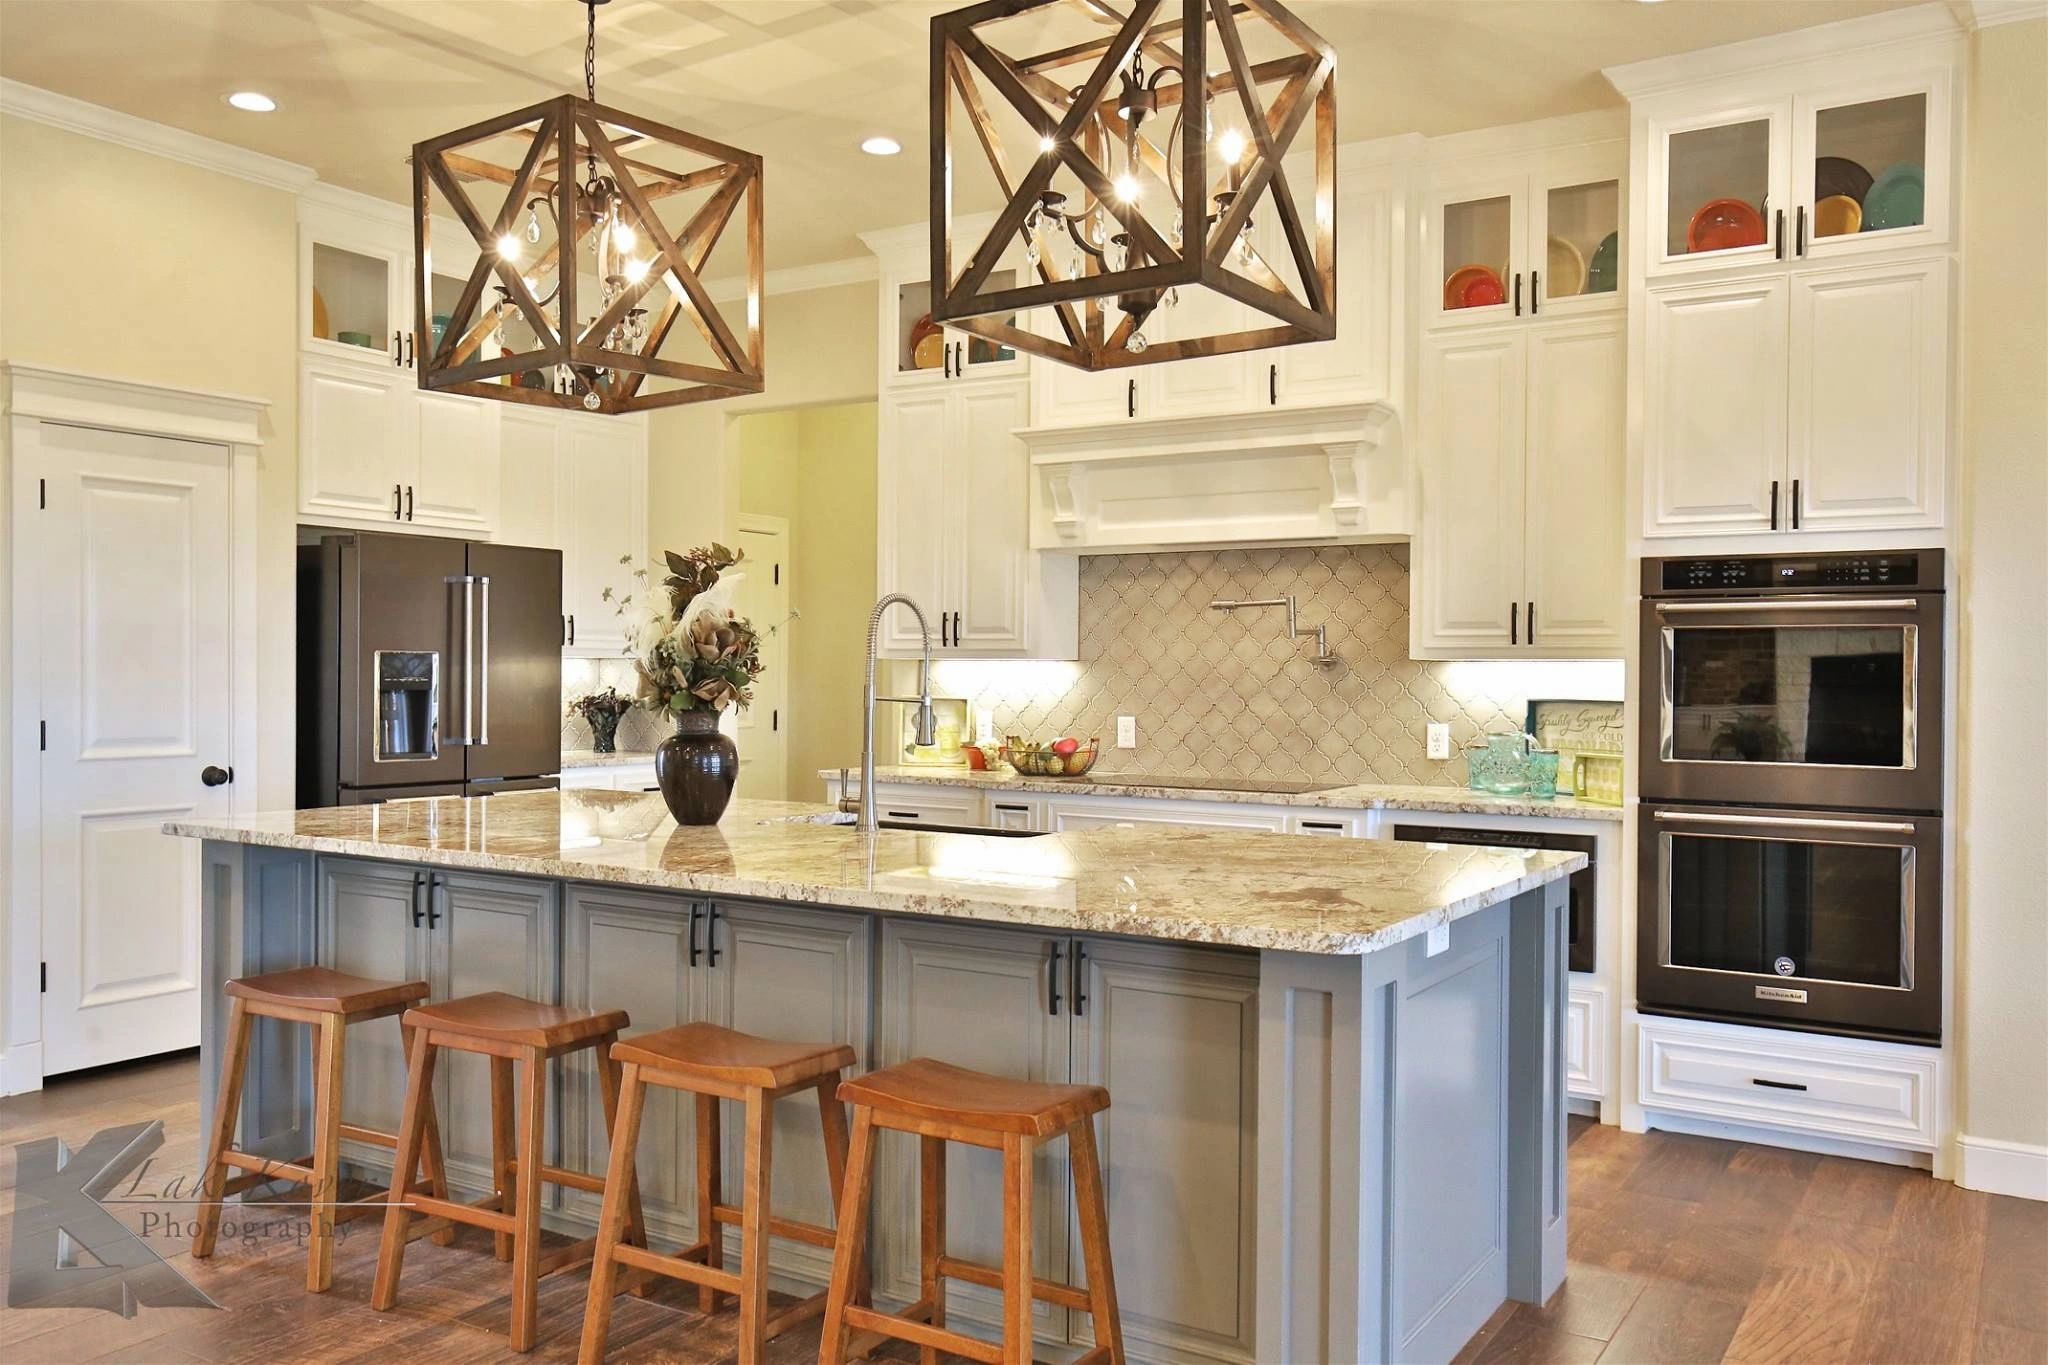 Lantrip's Custom Homes - Home Builder, Custom Home, Real Estate on rustic kitchen wall cabinets, rustic style kitchen cabinets, rustic kitchen cabinets red, rustic country kitchen cabinets, rustic wood kitchen cabinets, rustic cherry kitchen cabinets, rustic cedar kitchen cabinets, rustic hickory kitchen cabinets, rustic white kitchen cabinets, rustic black kitchen cabinets, rustic kitchen storage cabinets, rustic looking kitchen cabinets, rustic log kitchen cabinets, rustic kitchen cabinets finishes, rustic painted kitchen cabinets, rustic kitchen cabinets cheap, rustic birch kitchen cabinets, rustic oak kitchen cabinets,